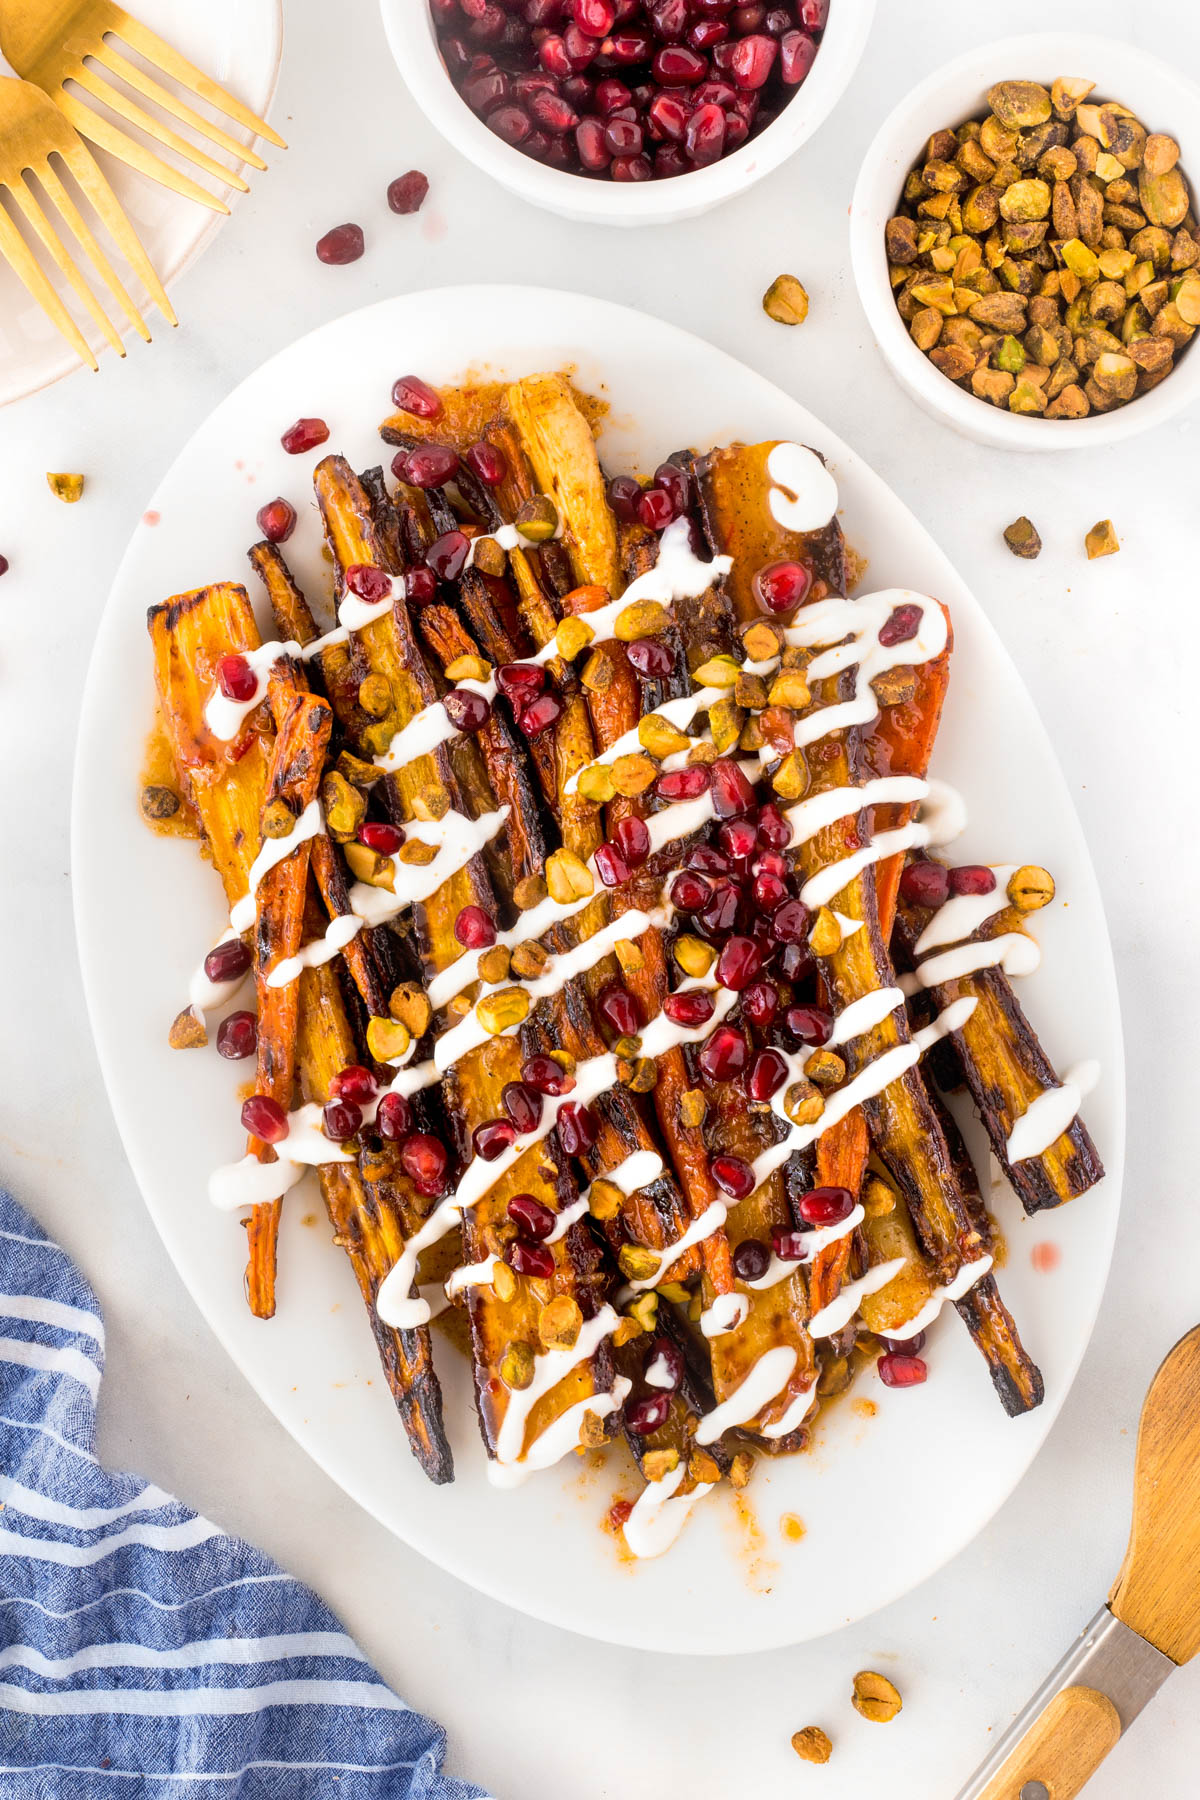 Harissa grilled carrots on a large white platter drizzled with yogurt and covered with chopped pistachio nuts and pomegranate seeds.